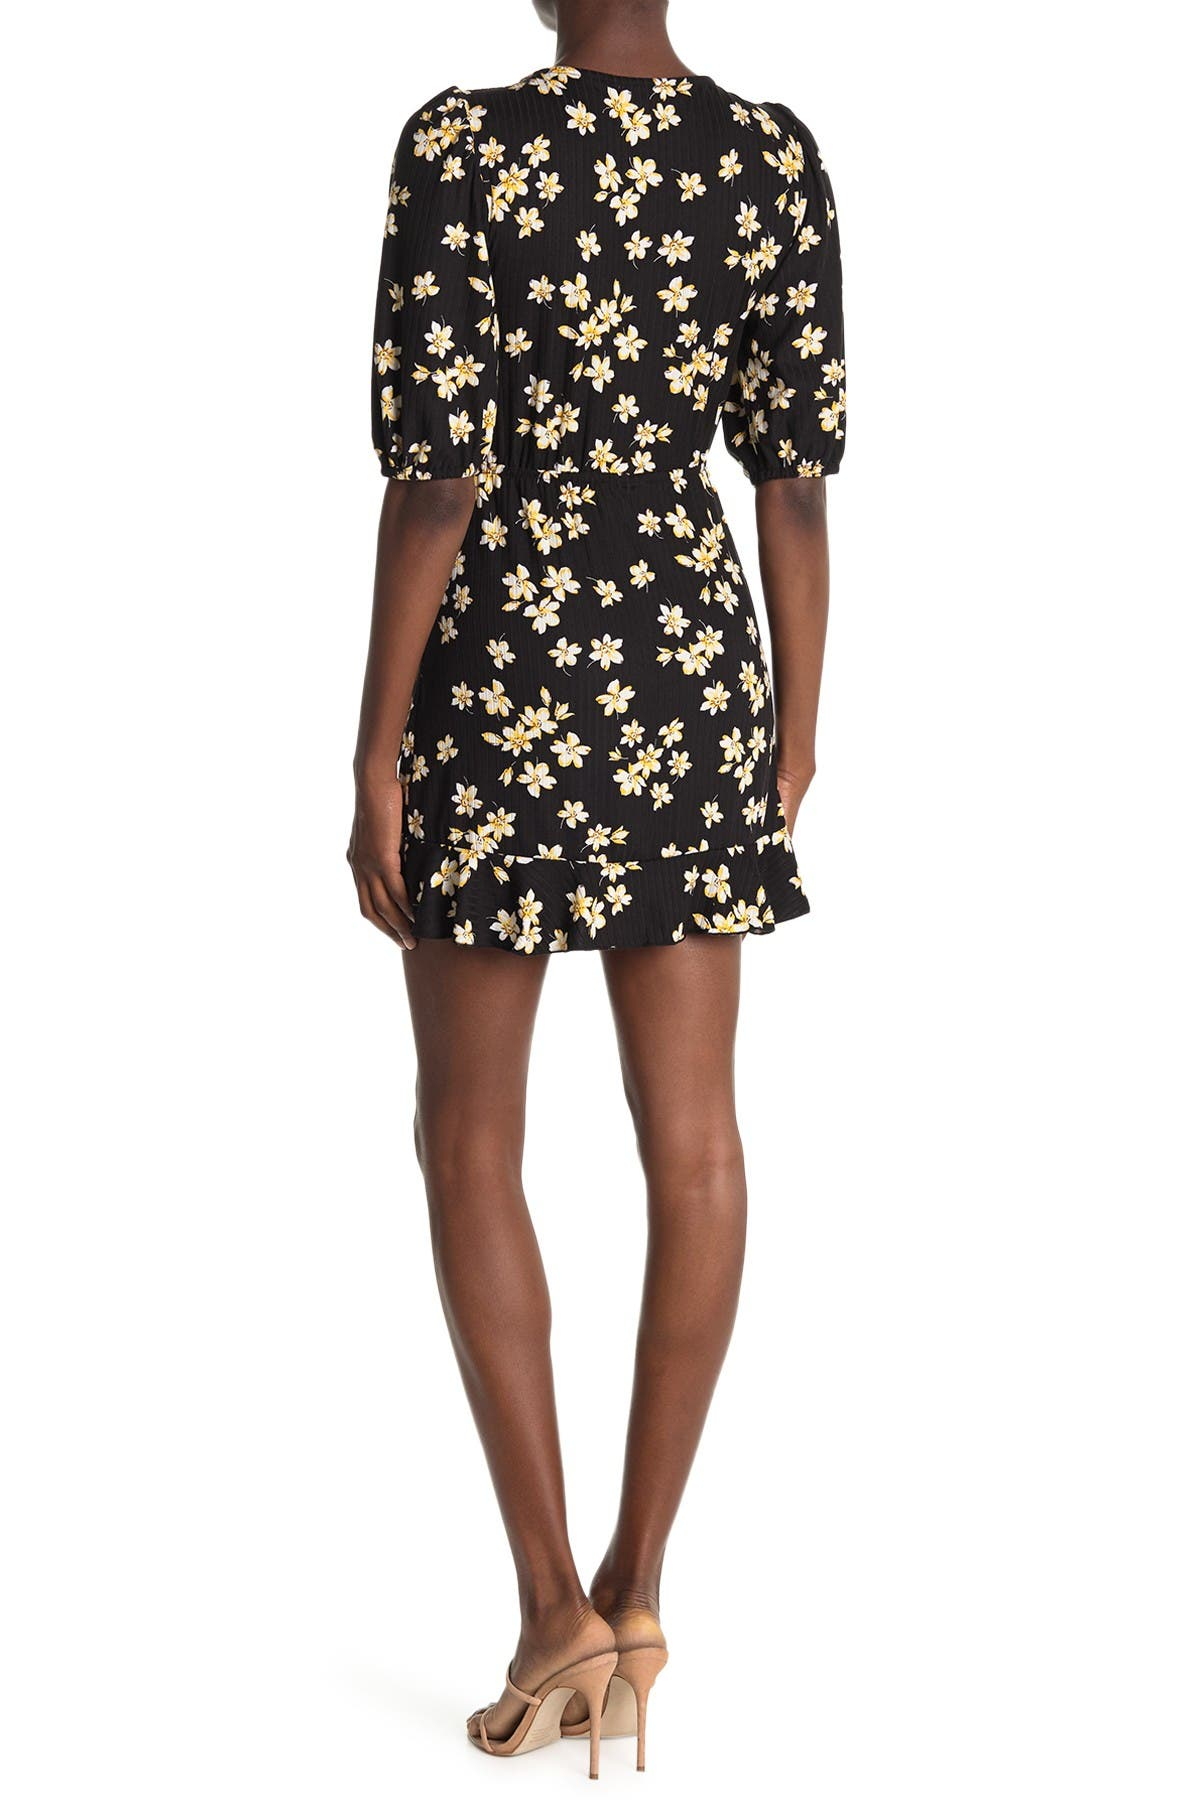 Image of Velvet Torch Faux Wrap Knit Floral Dress